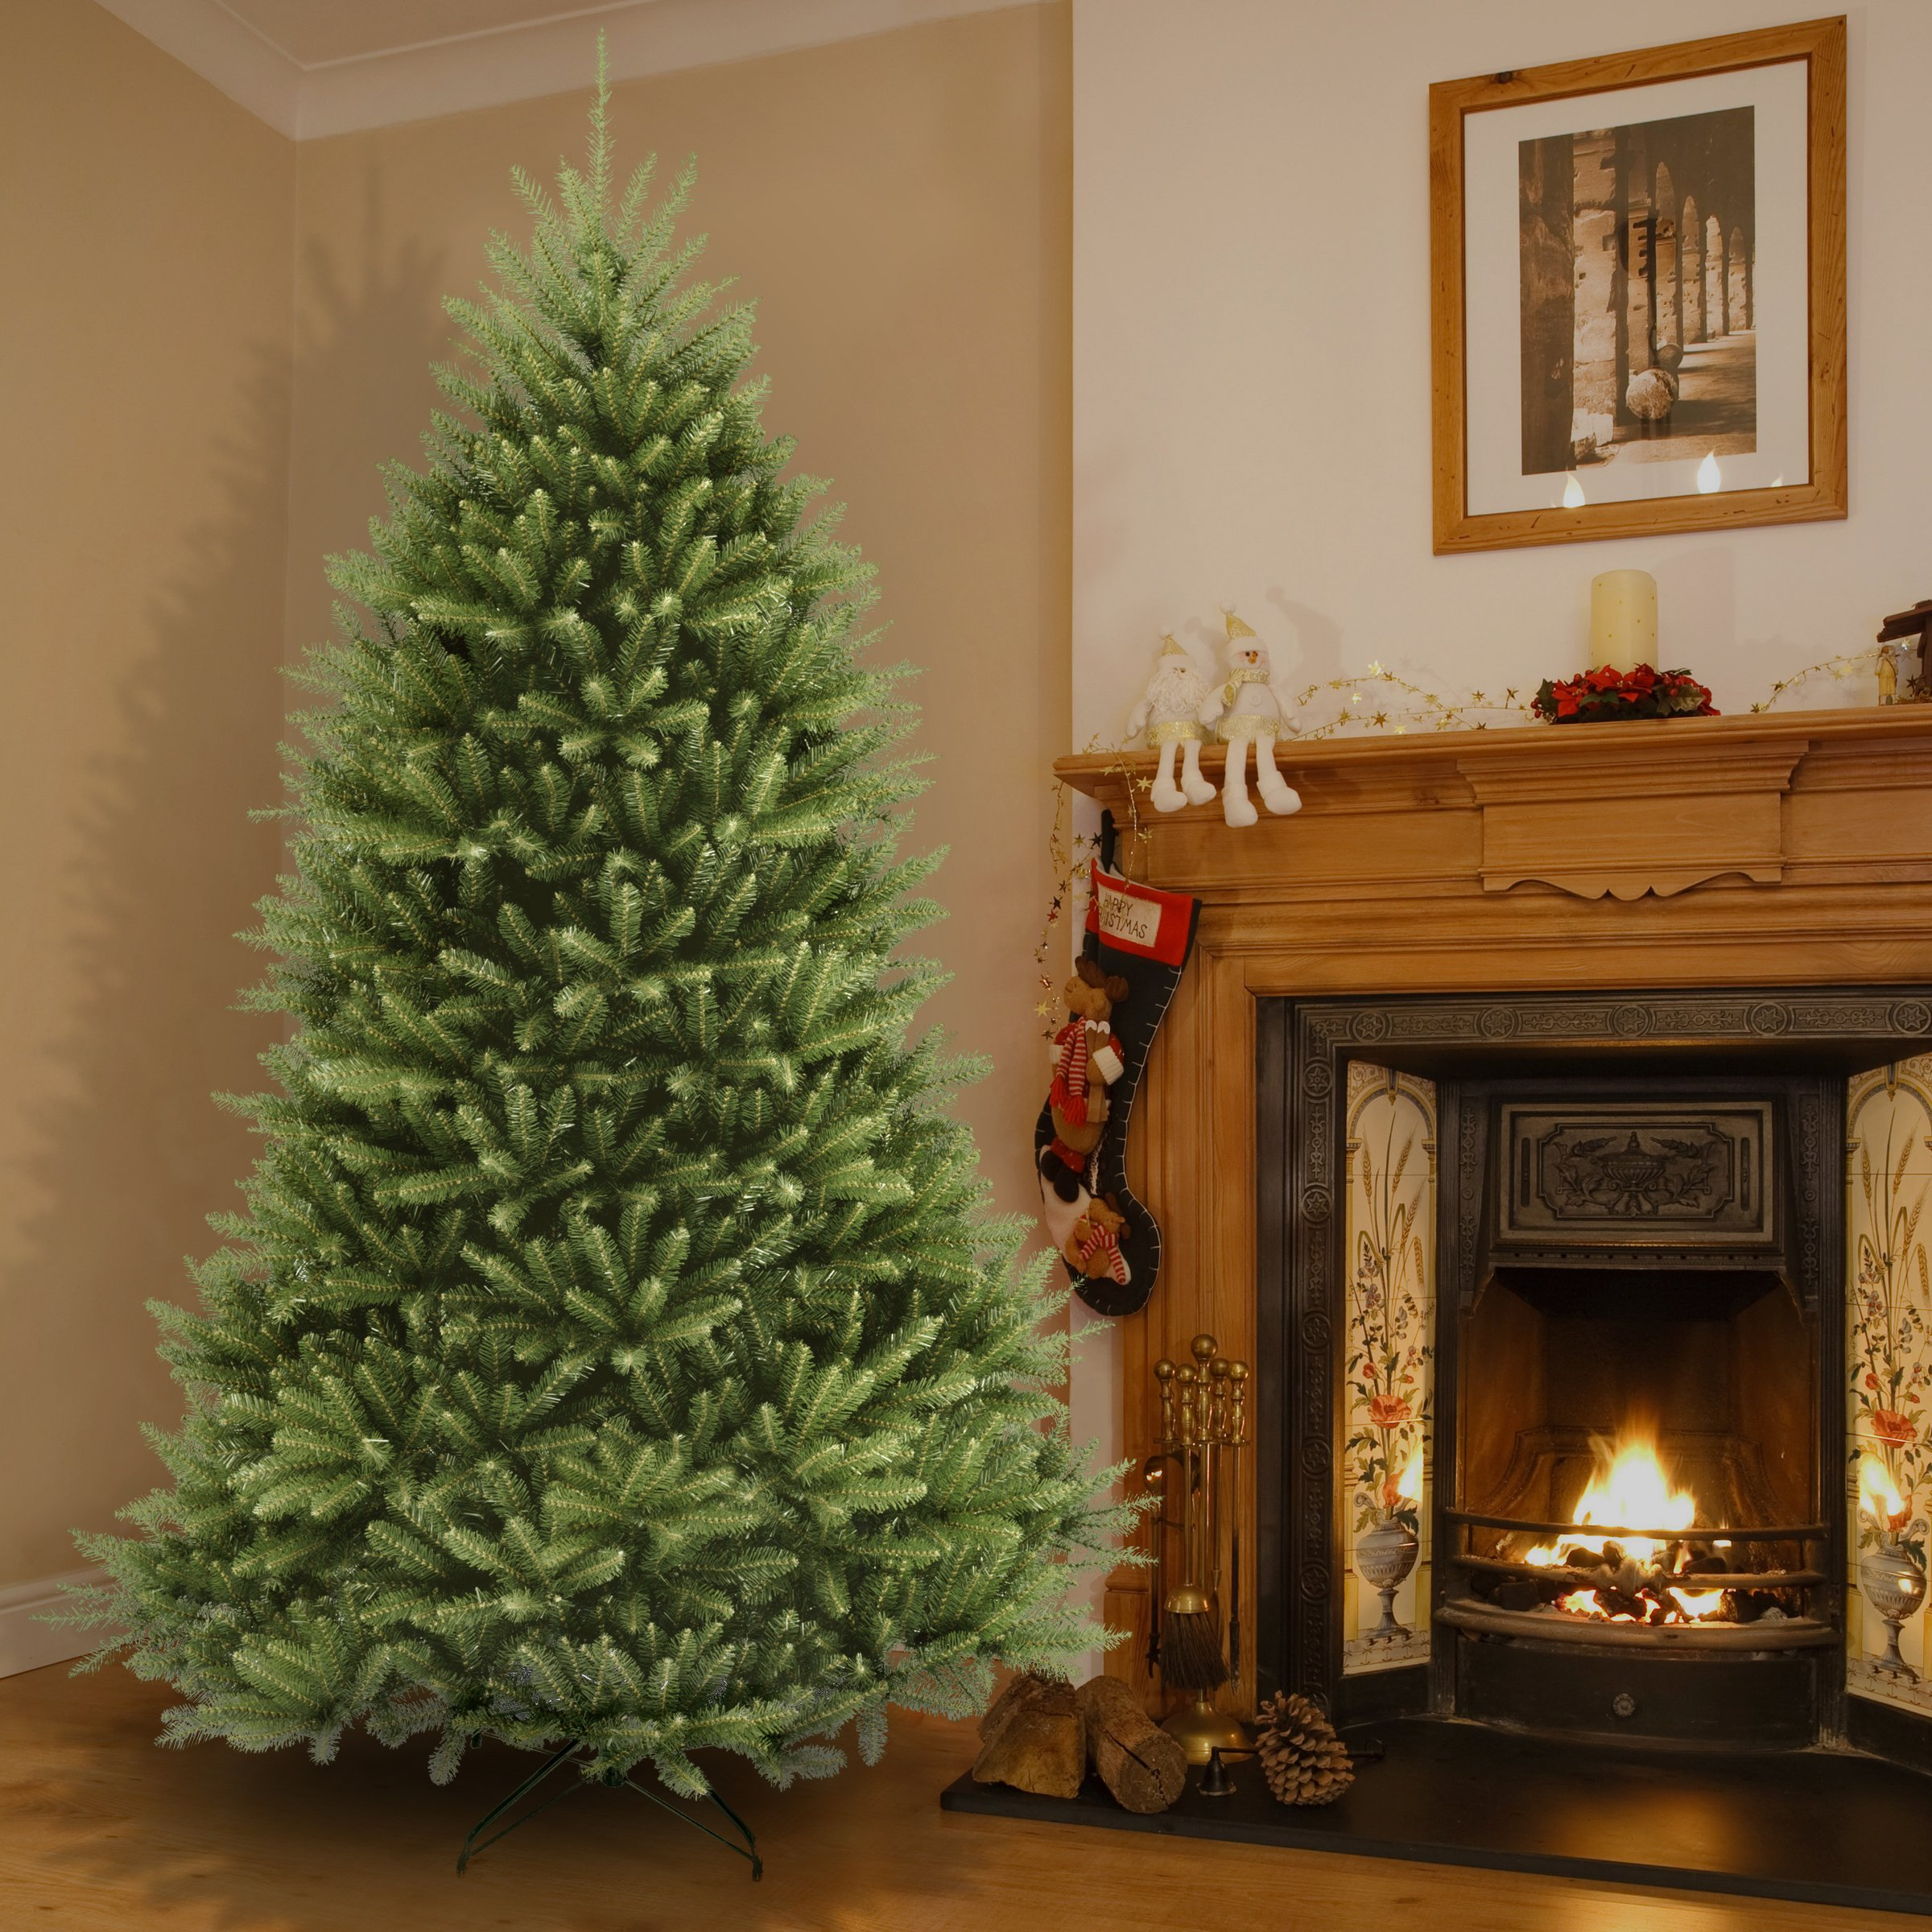 National Tree 7.5 Foot Dunhill Fir Christmas Tree, Hinged (DUH-75) by National Tree Company (Image #2)